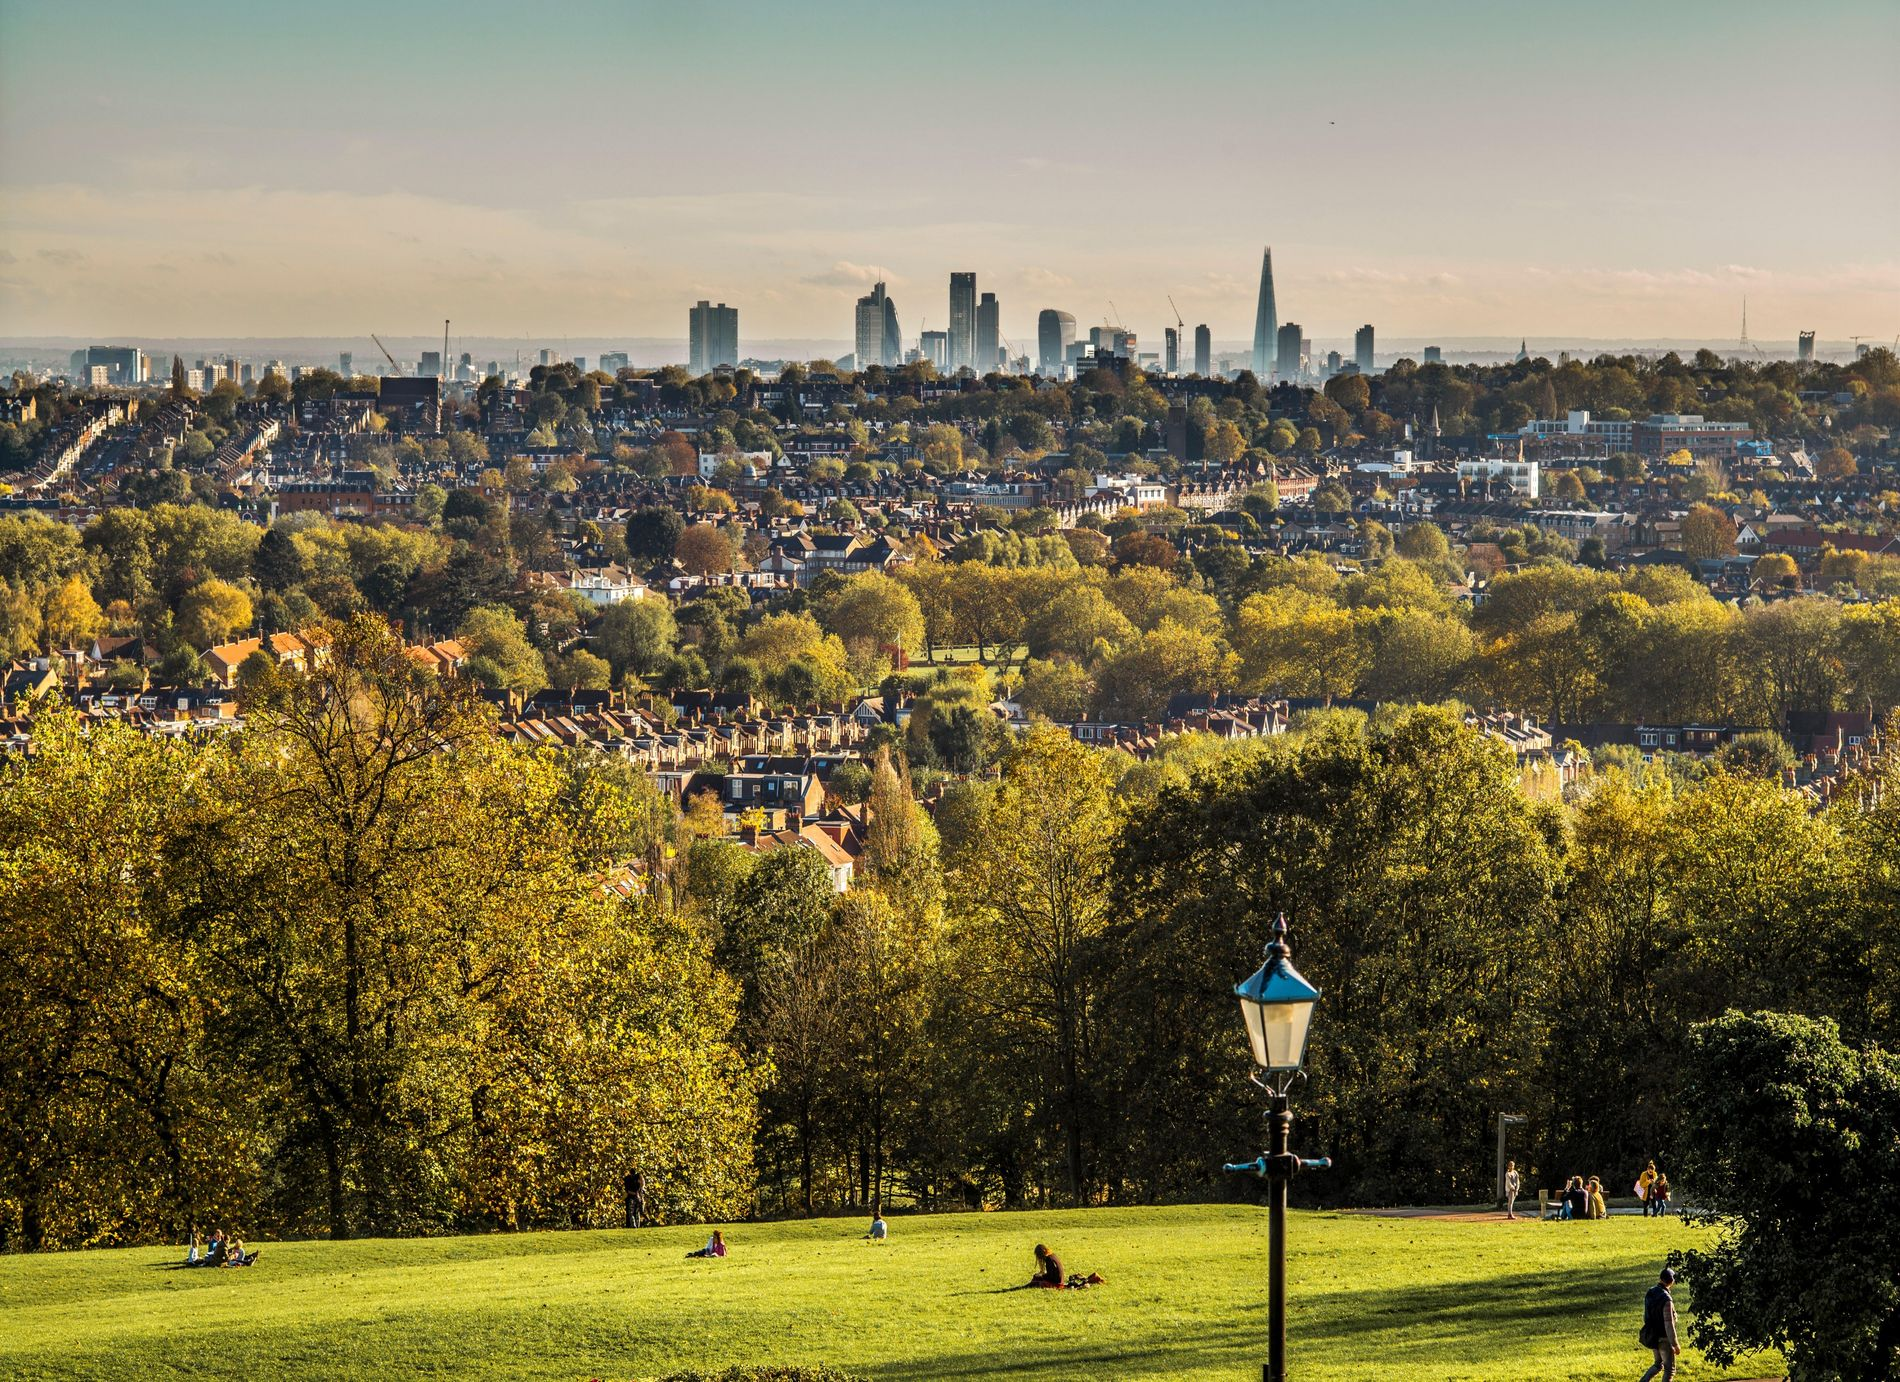 North London and London City with The Shard, from Alexandra Park.